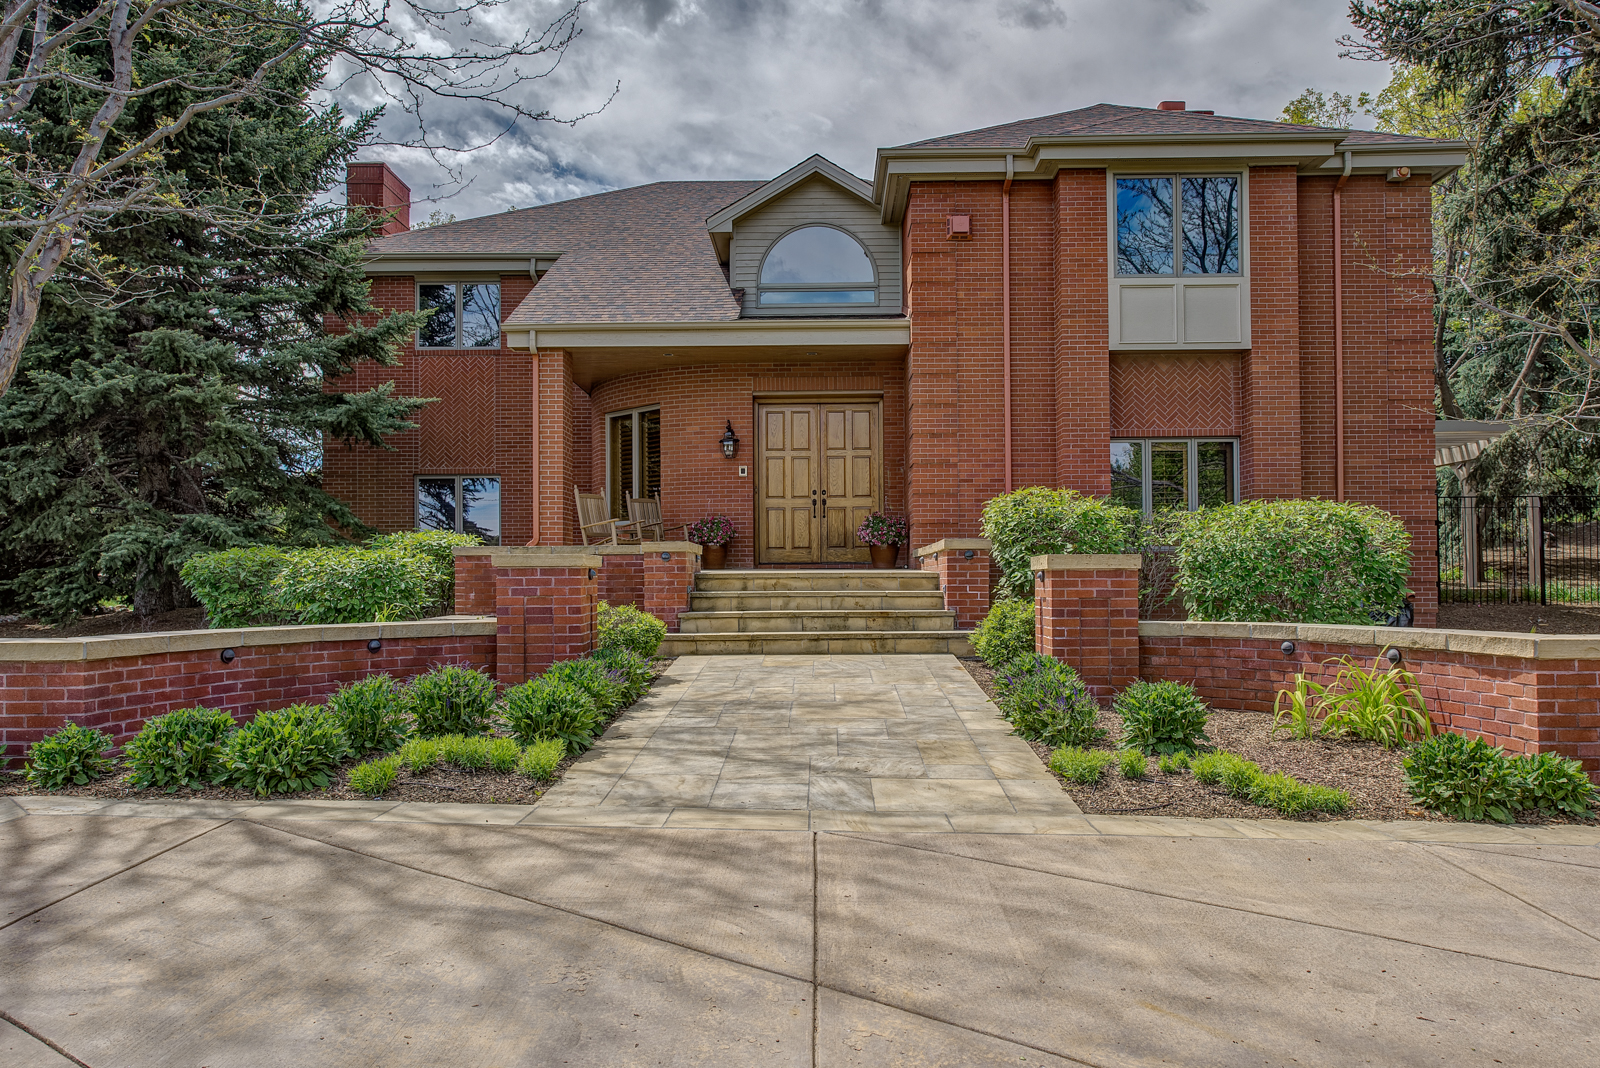 Casa Unifamiliar por un Venta en Private Custom Two-Story Brick Home 2400 East Willamette Lane Greenwood Village, Colorado 80121 Estados Unidos